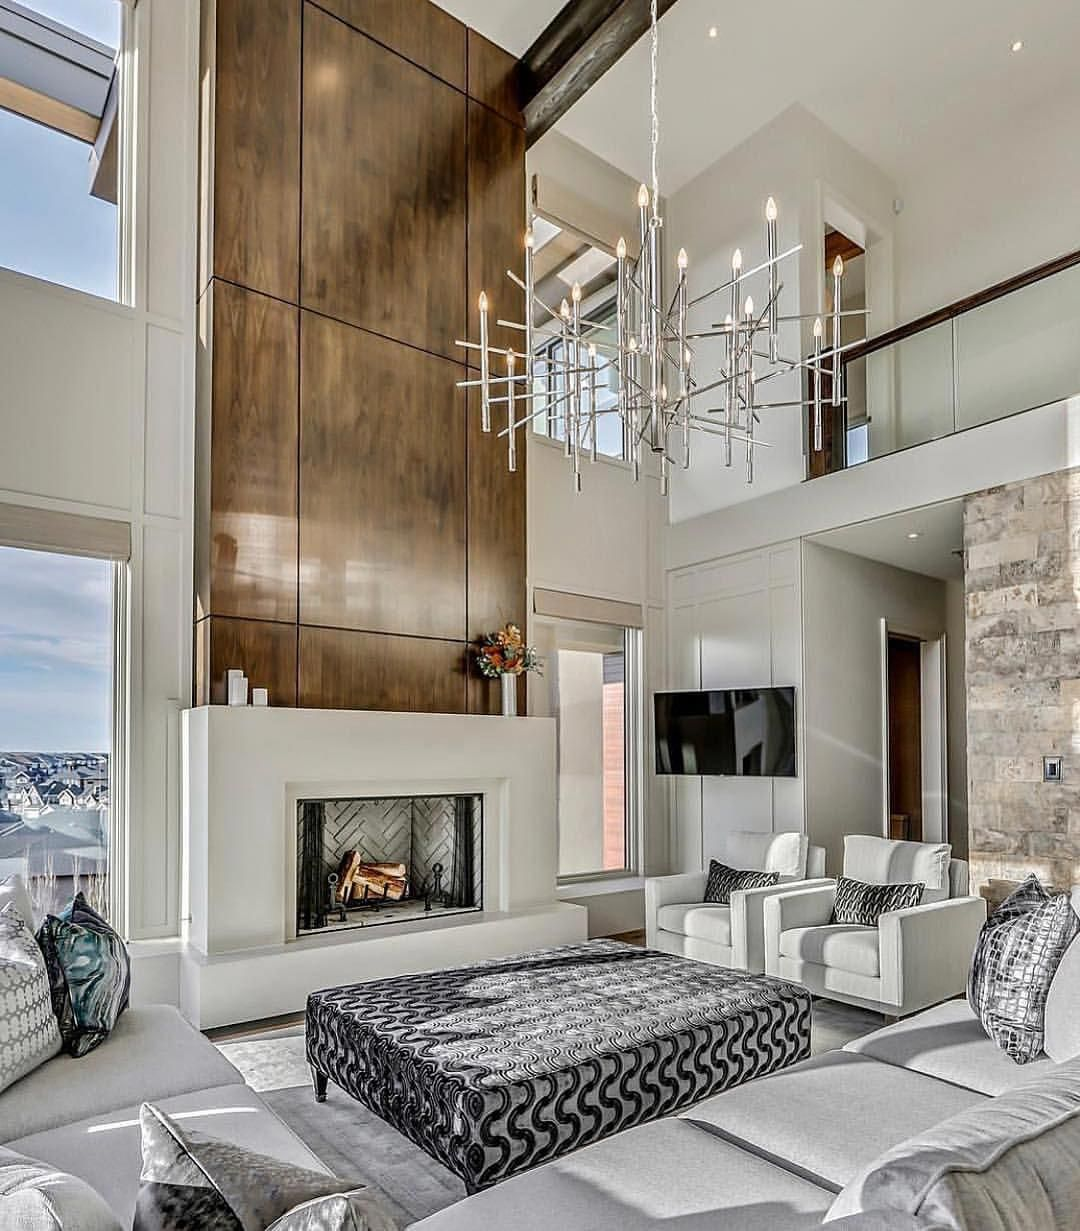 What Is The First Thing That Caught Your Eye In This Family Room